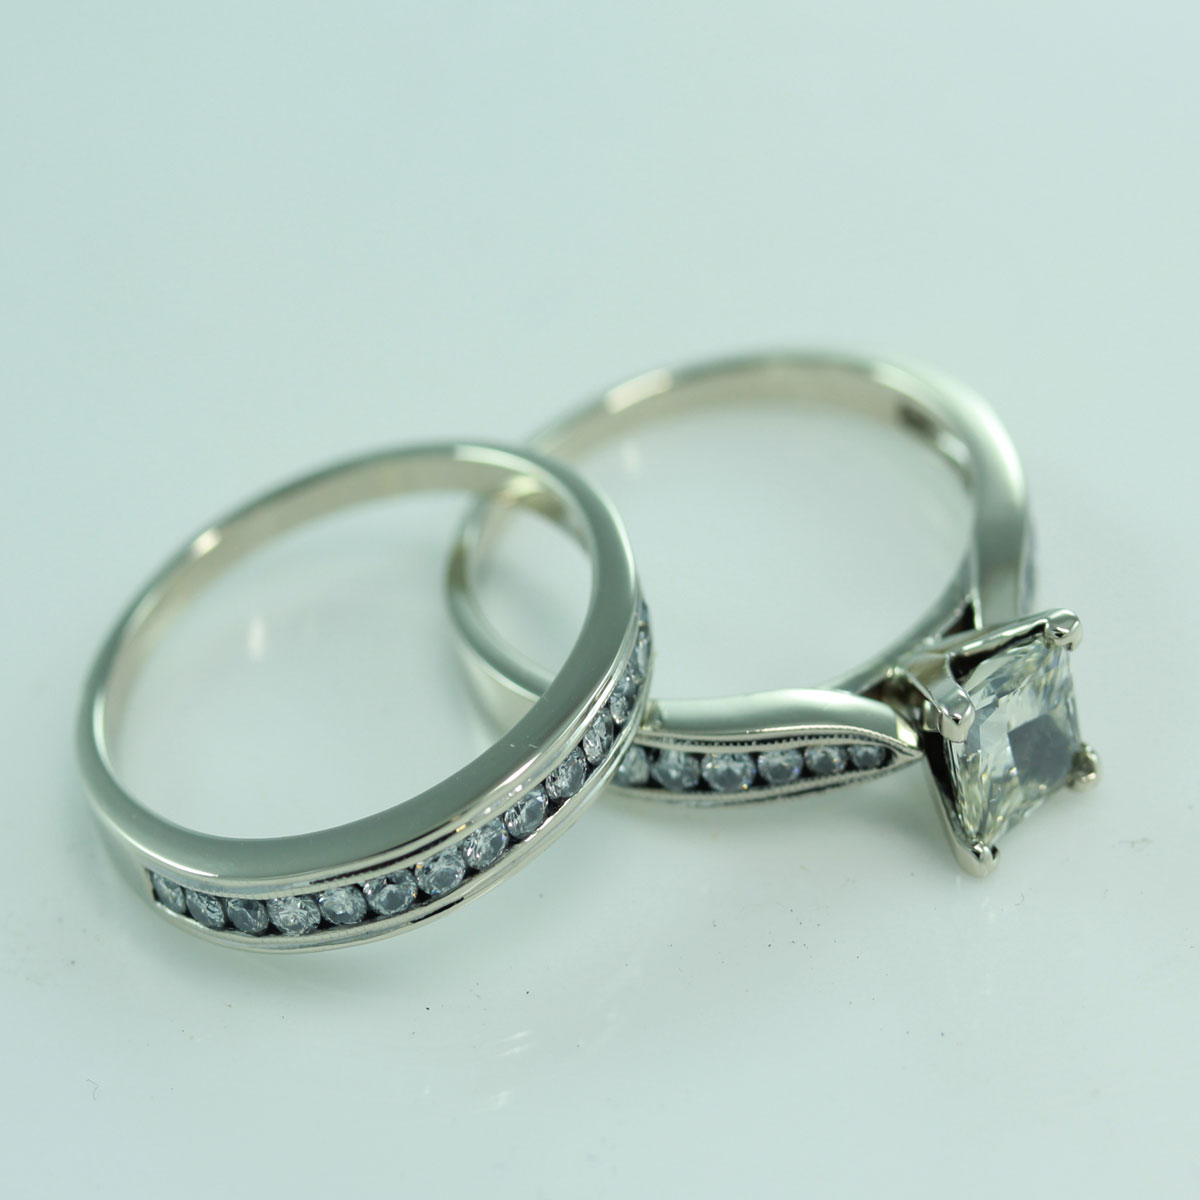 Rings With Quotes On Them Quotesgram: Quotes About Engagement Rings. QuotesGram